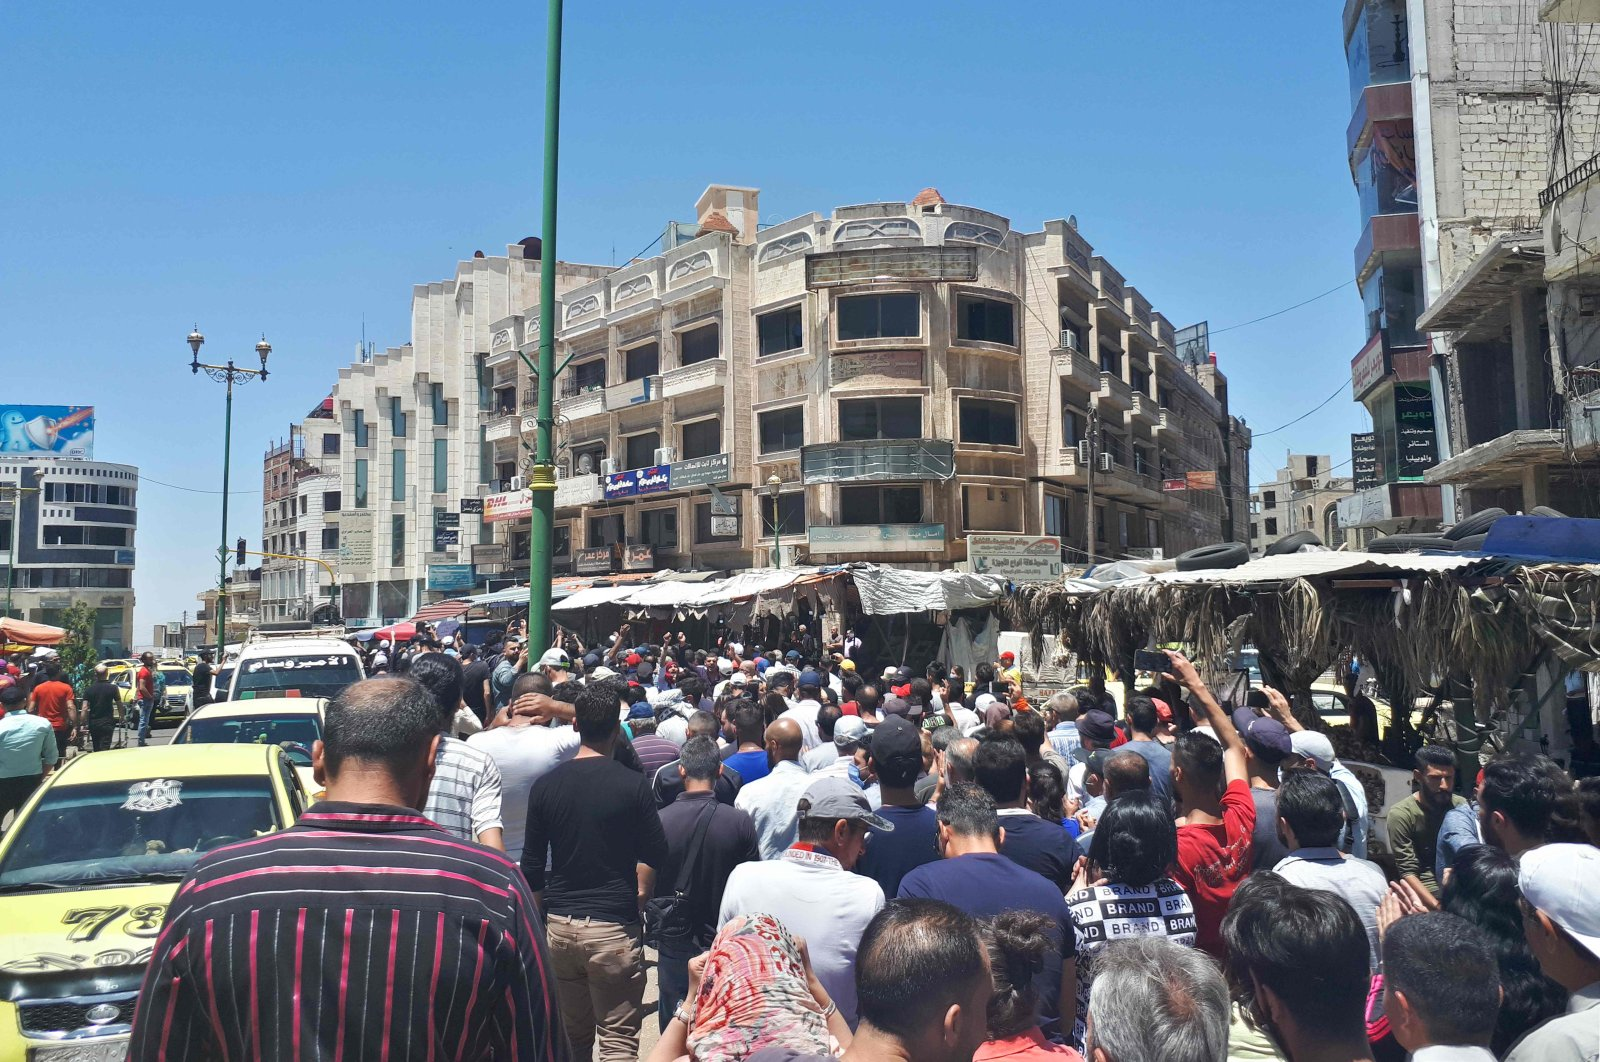 A handout picture released by the local news site Suwayda 24 shows Syrians chanting anti-regime slogans as they protest the country's deteriorating economic conditions and corruption, in the southern city of Suwaida, June 9, 2020. (SUWAYDA24 / AFP Photo)